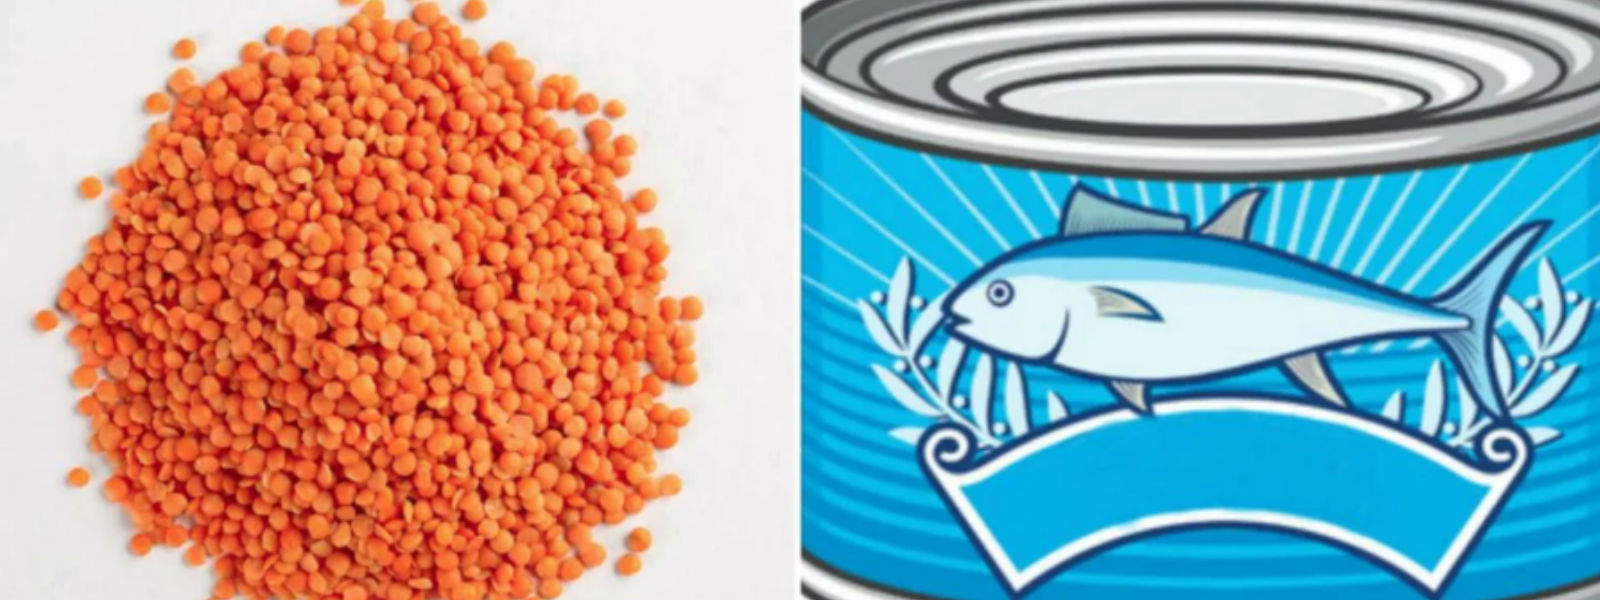 Govt to compensate importers to maintain Dhal and Salmon prices